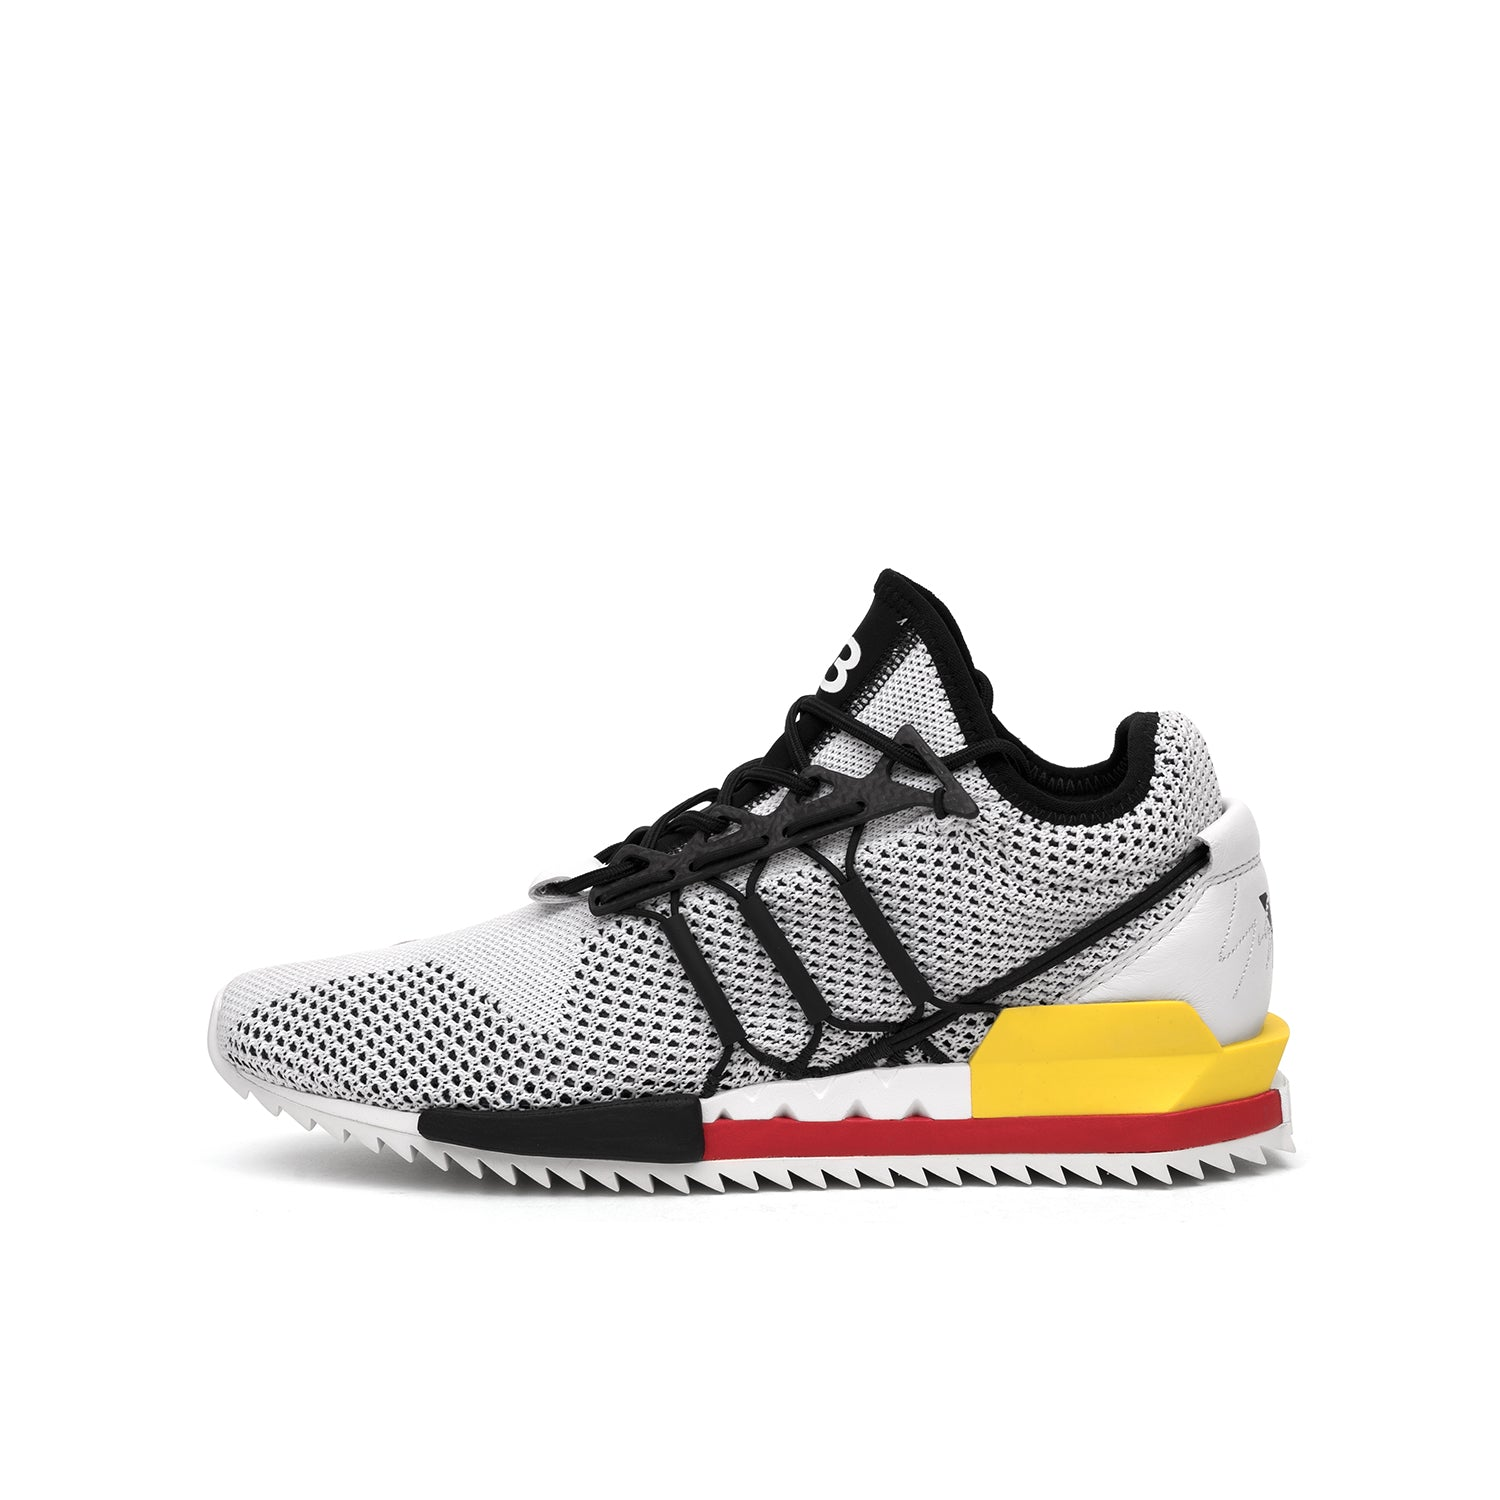 adidas Y-3 Harigane White / Black / Lush Red - BC0902